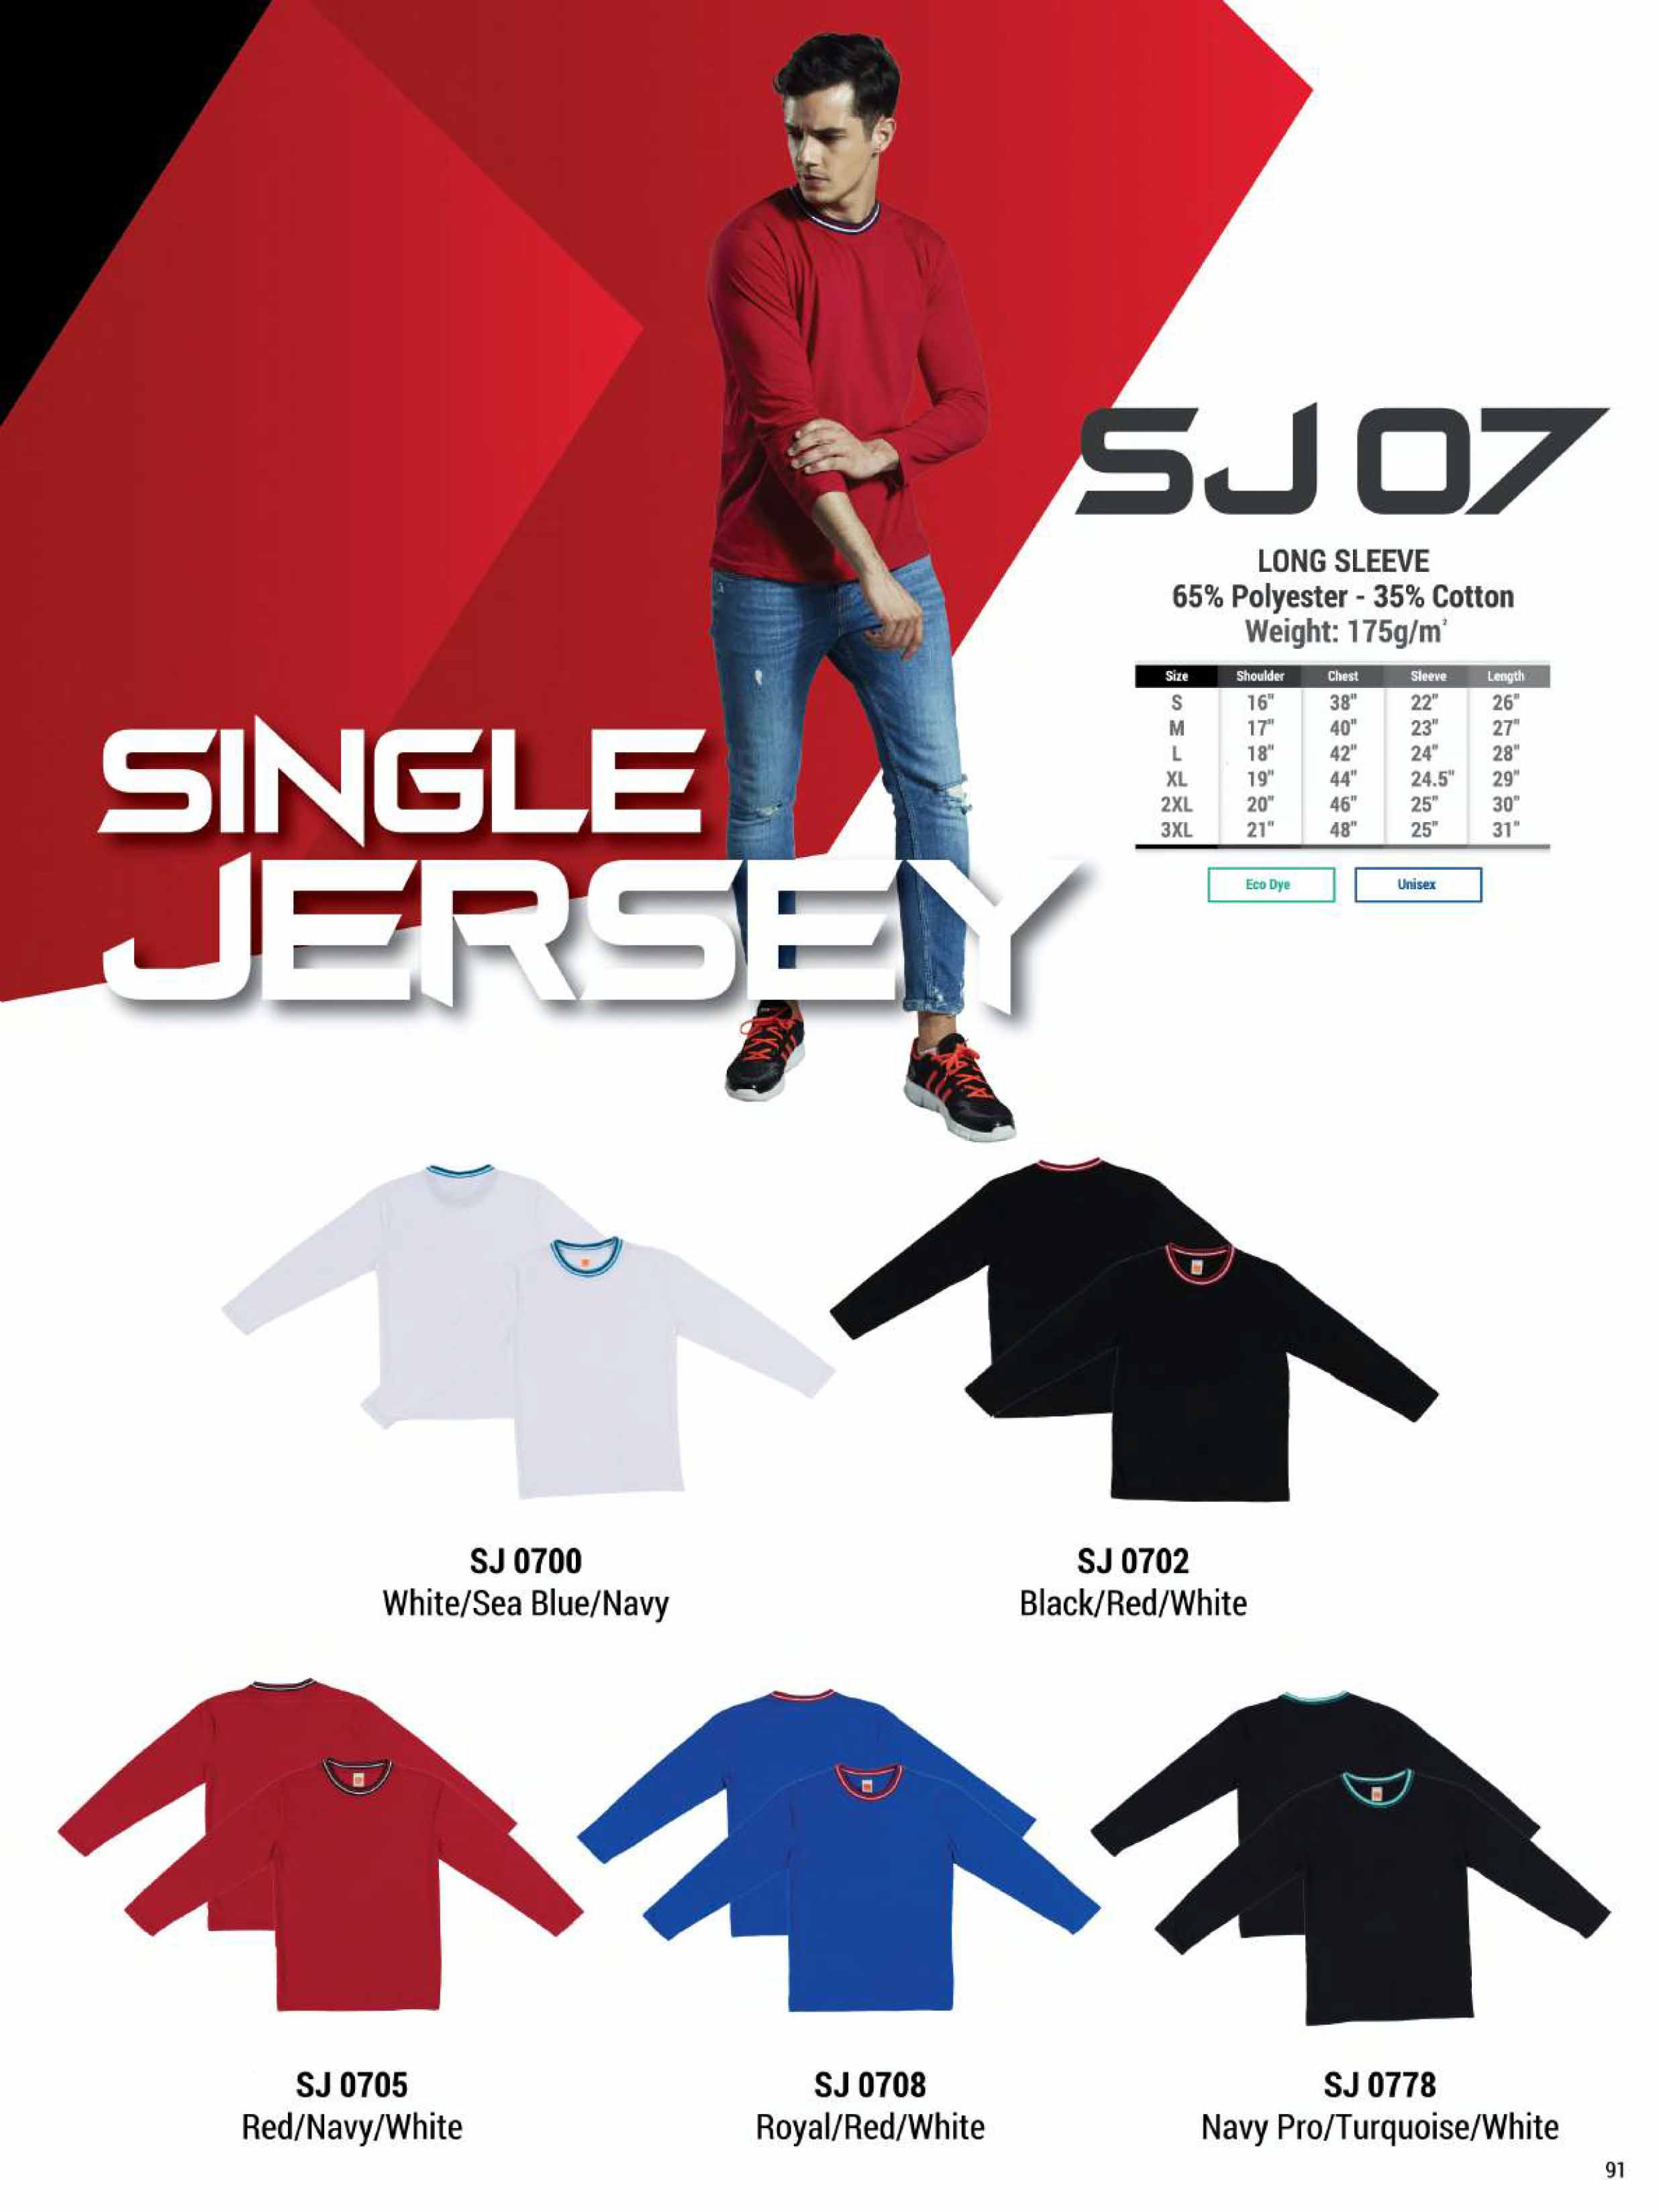 SJ07 COTTON LONG SLEEVE T-SHIRT